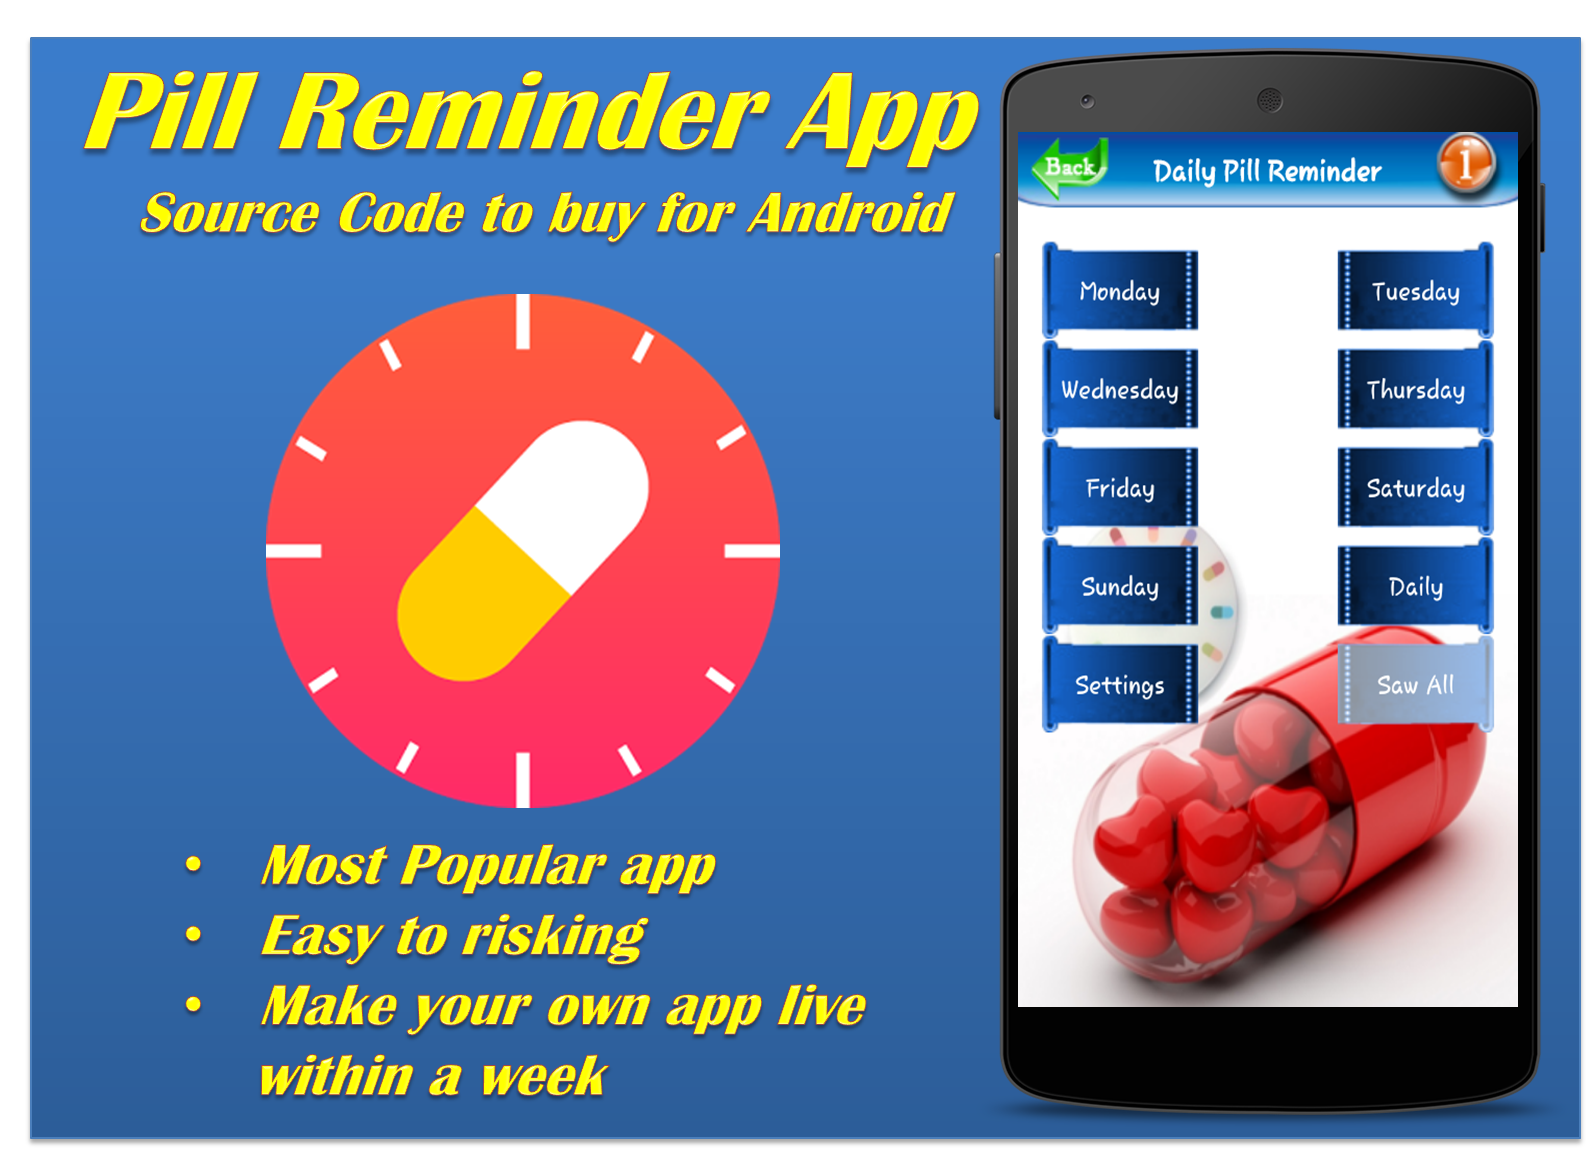 Daily Pill Reminder Android App Get full source code from